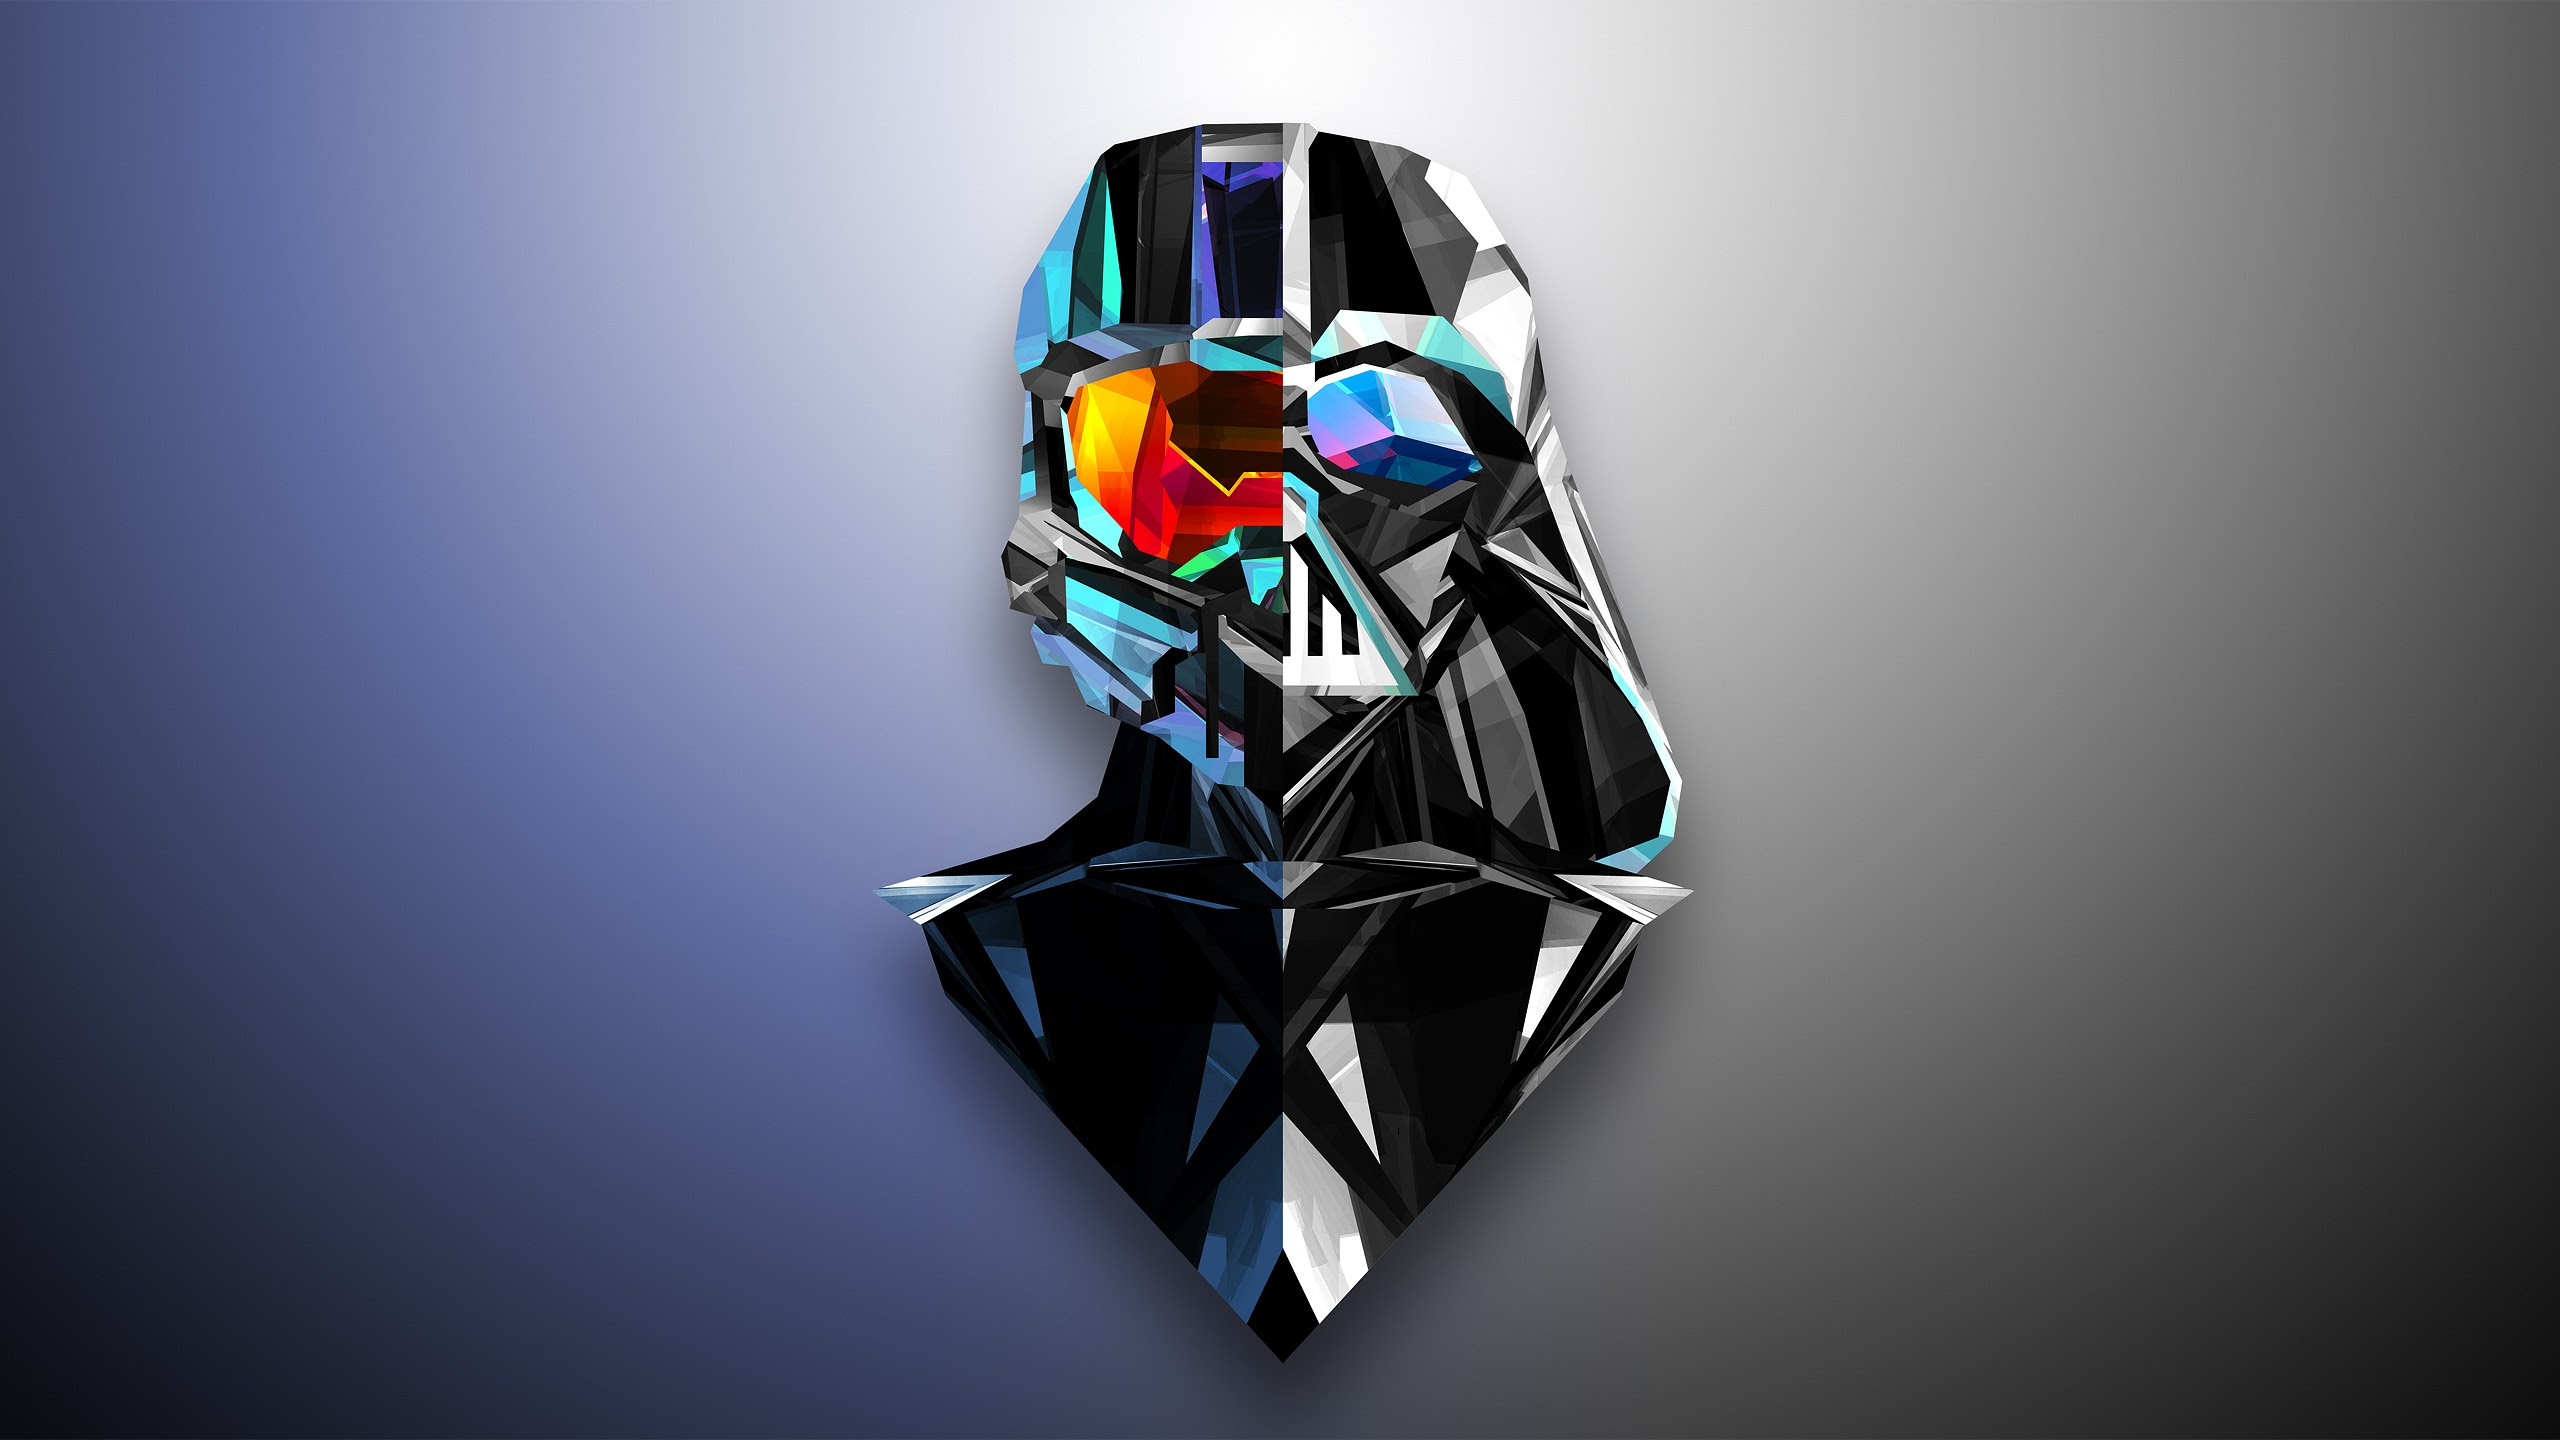 Abstract Darth Vader Master Chief Low Poly Justin Maller Halo